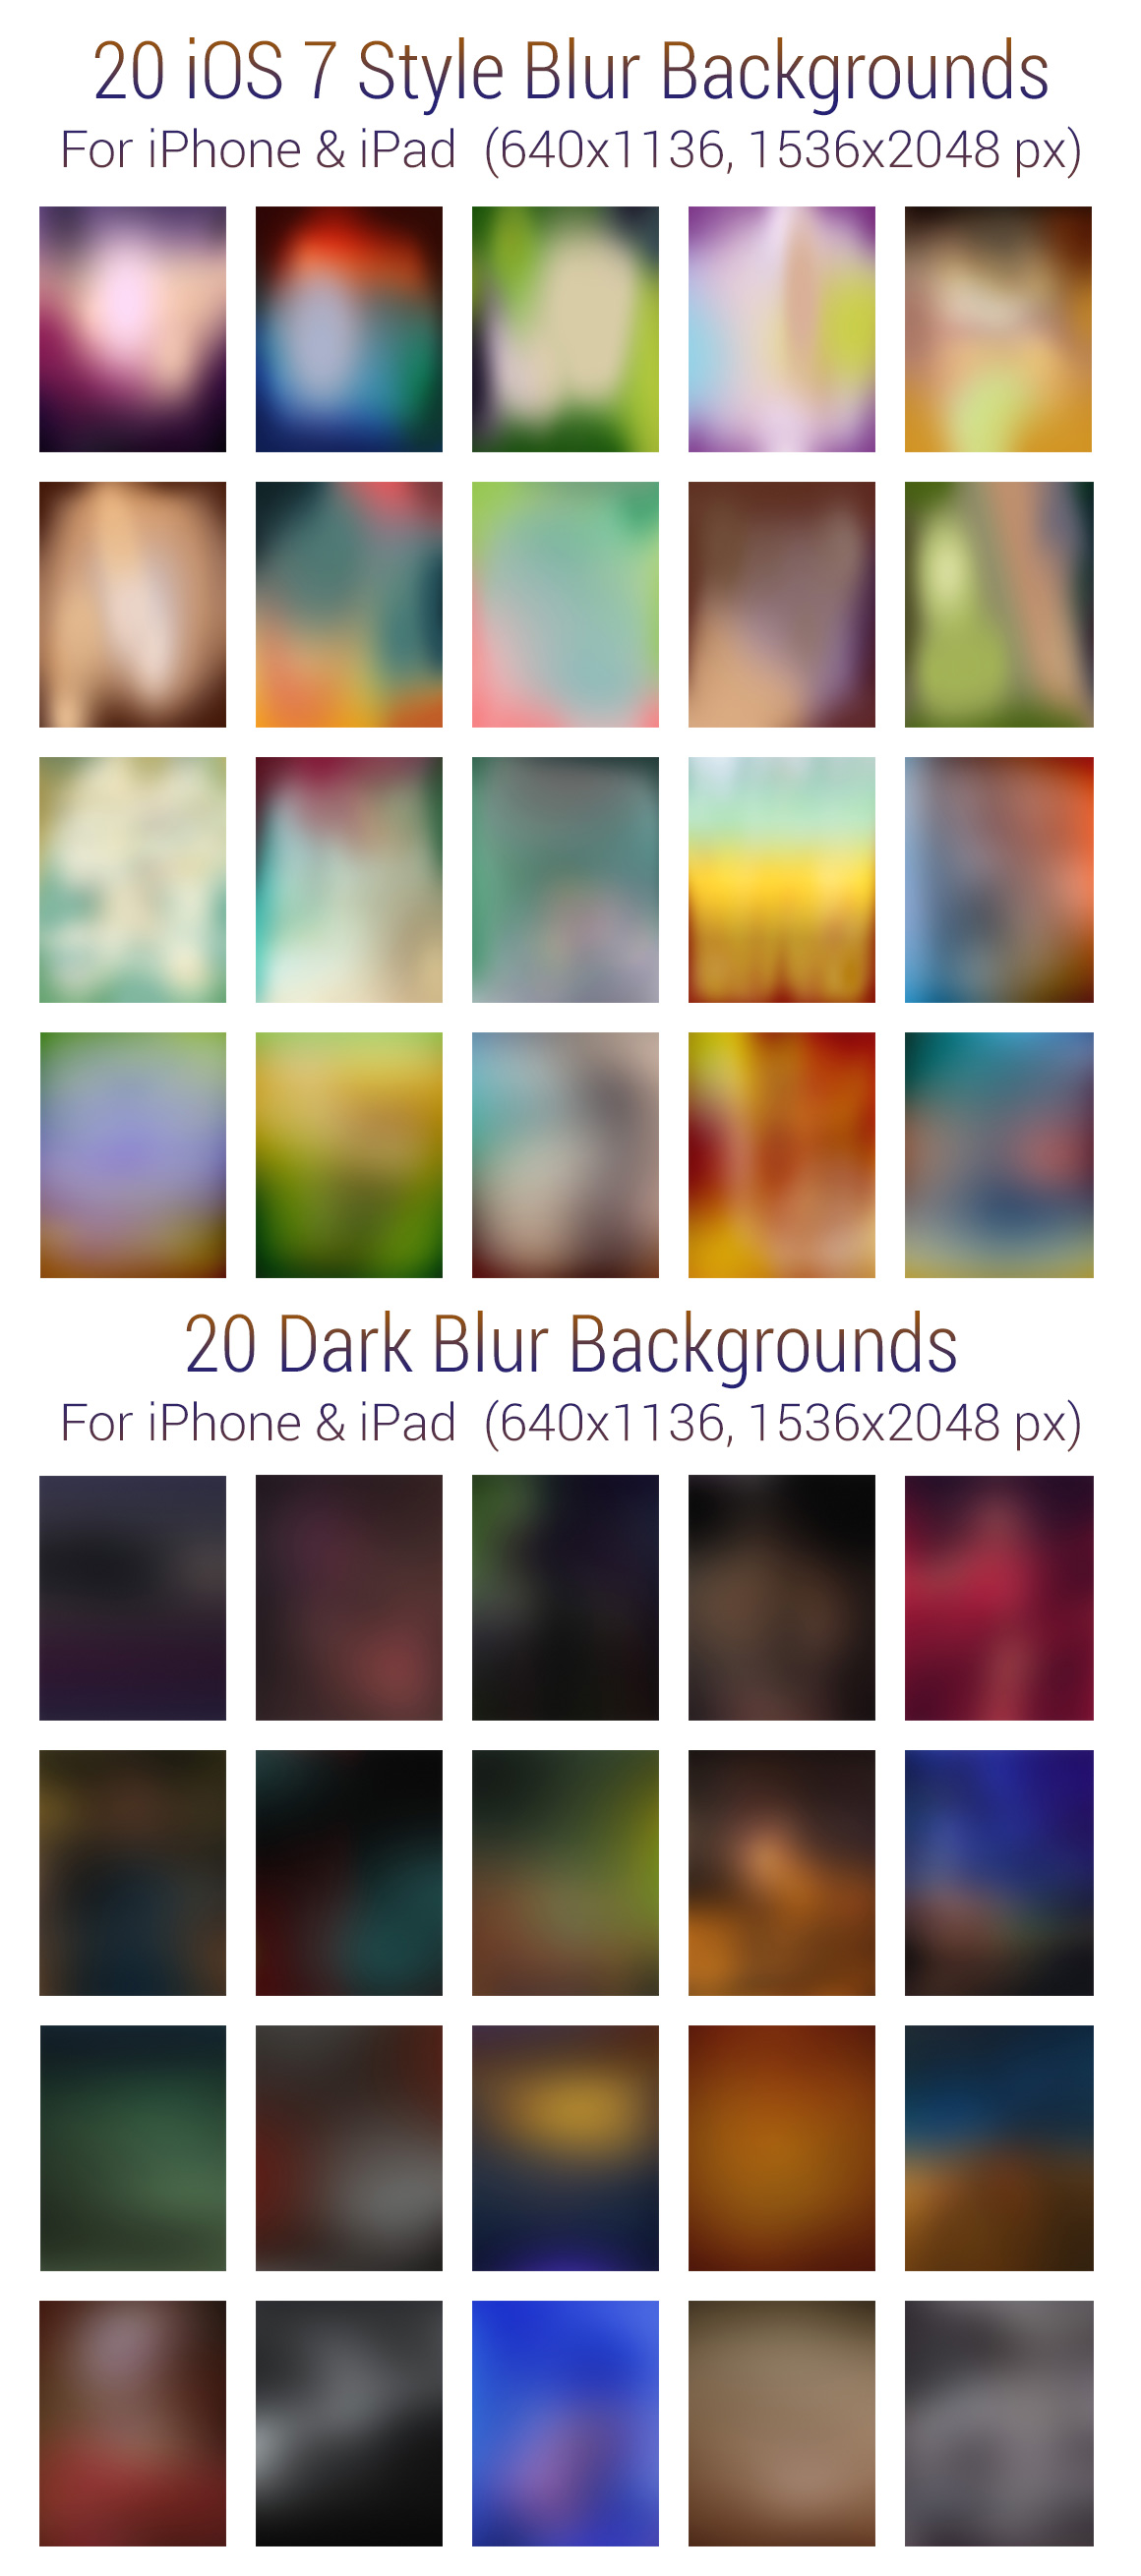 160 blur gradient backgrounds for iphone ipad - 1536x2048 ipad ...